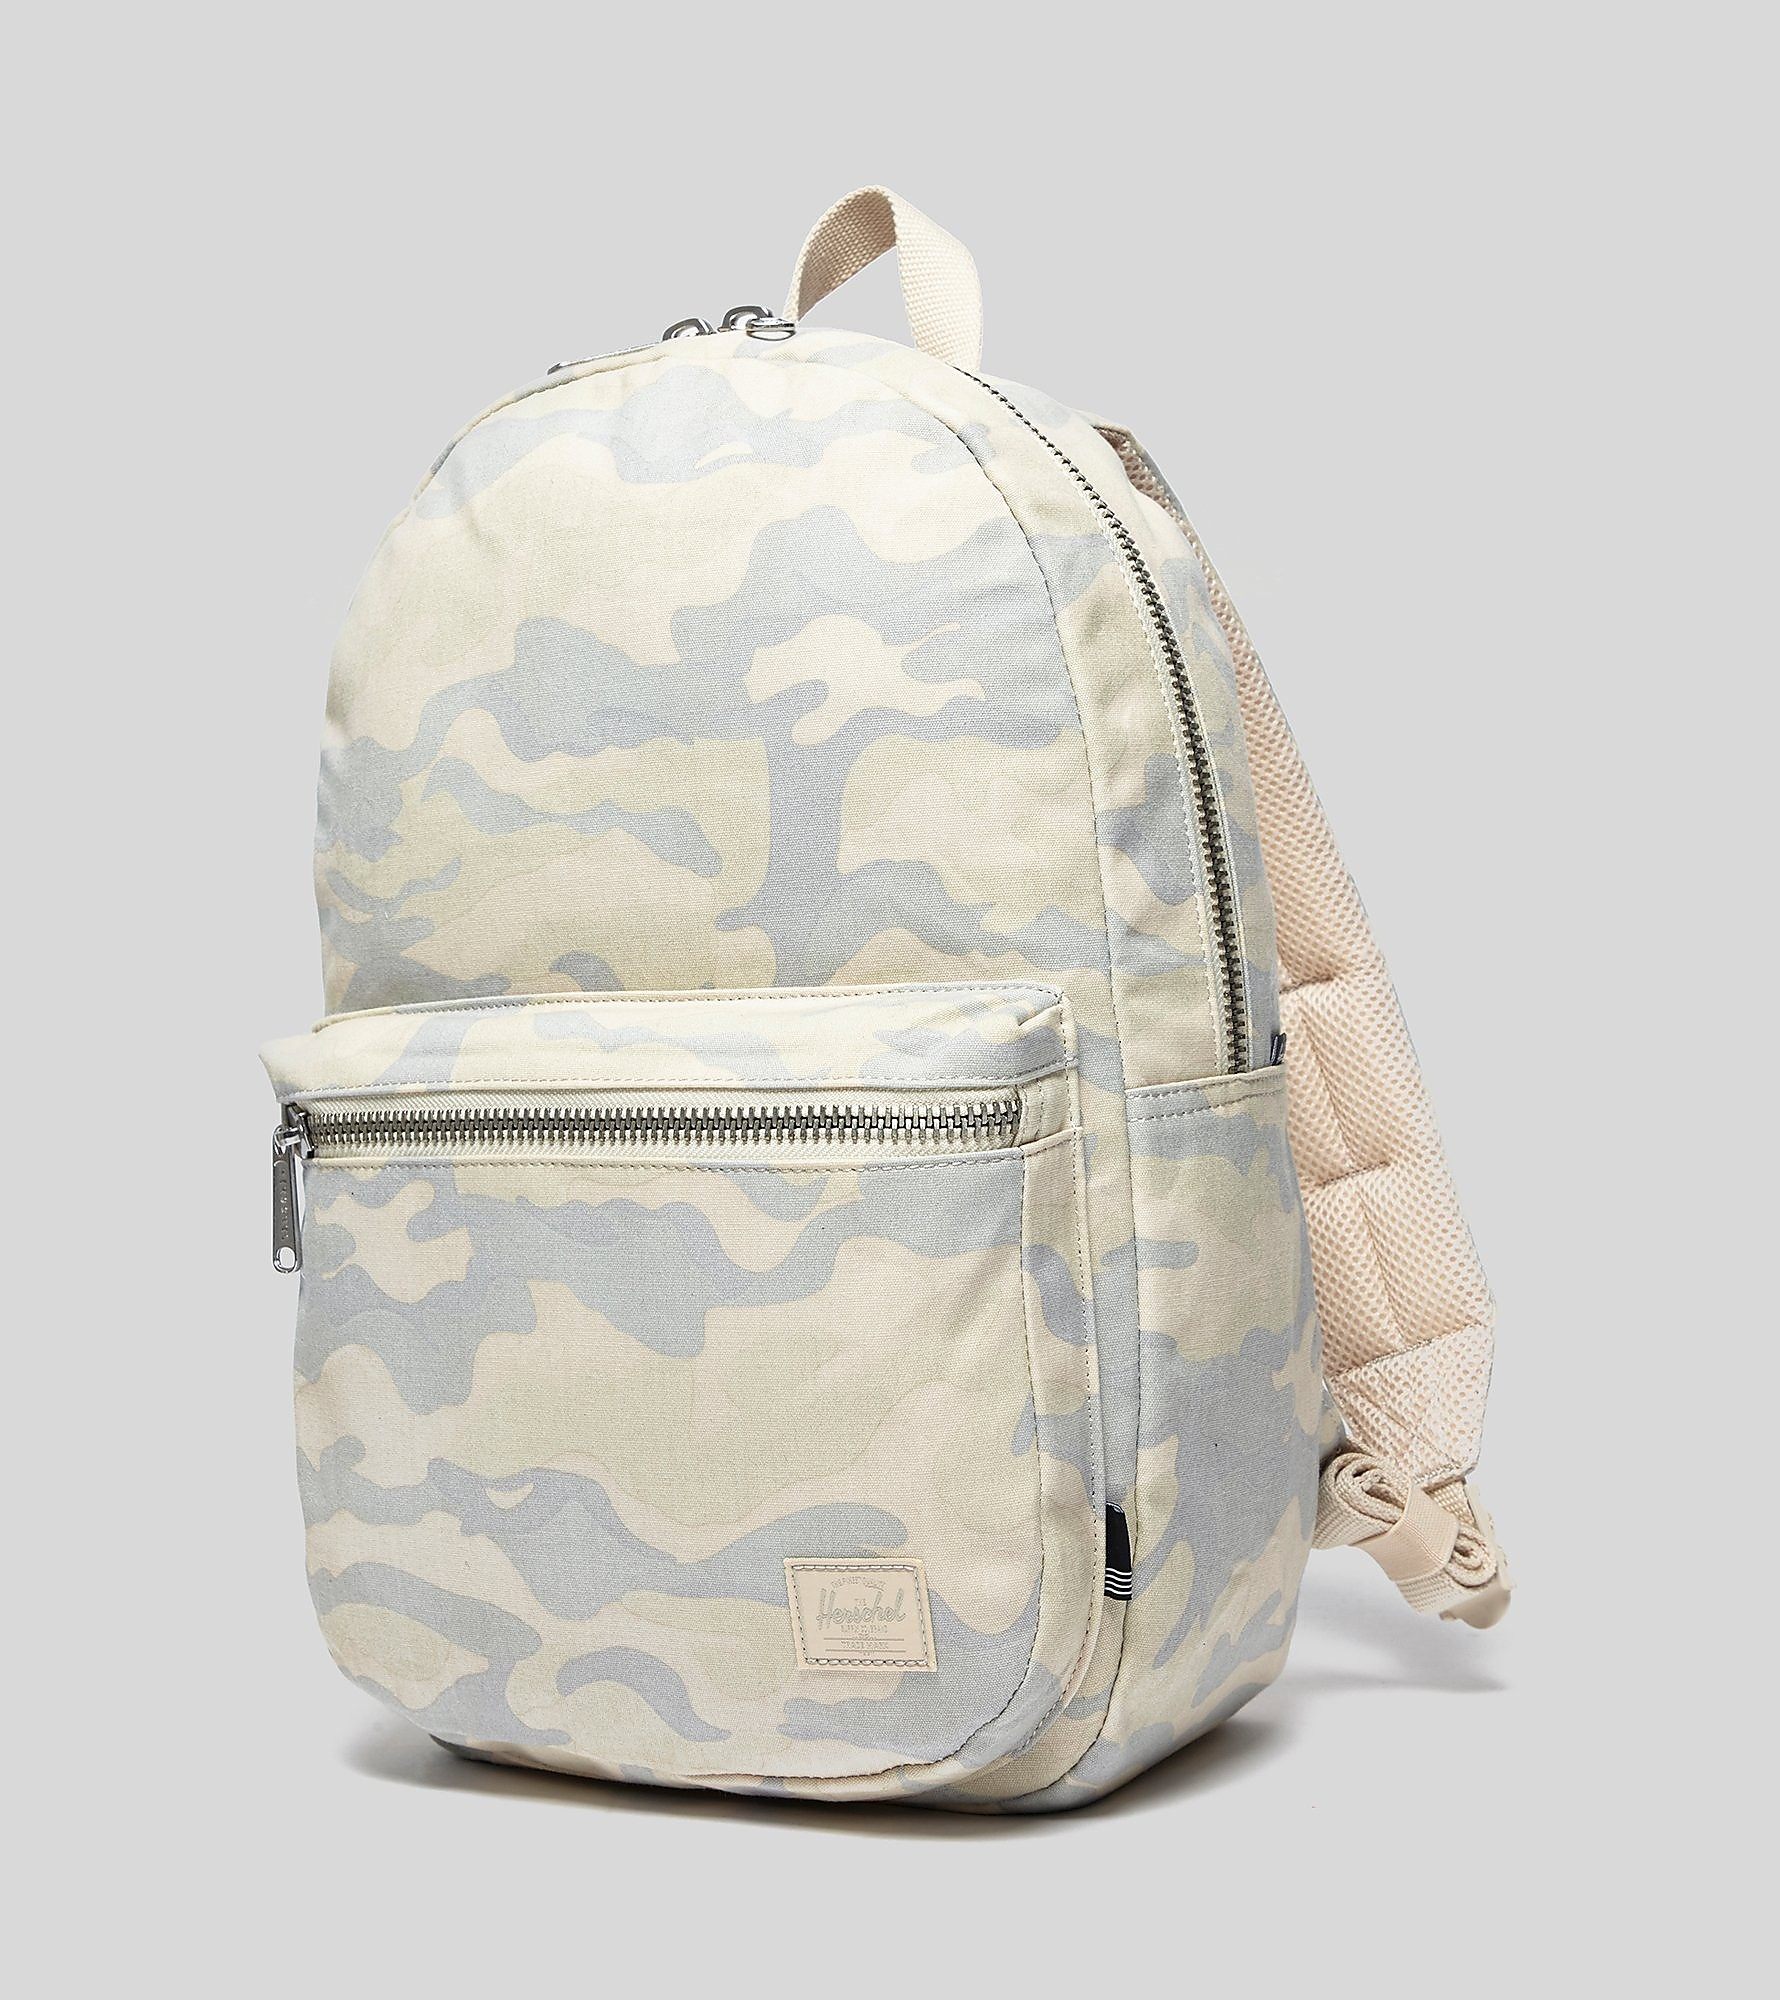 Herschel Supply Co Lawson Backpack, White/Blue